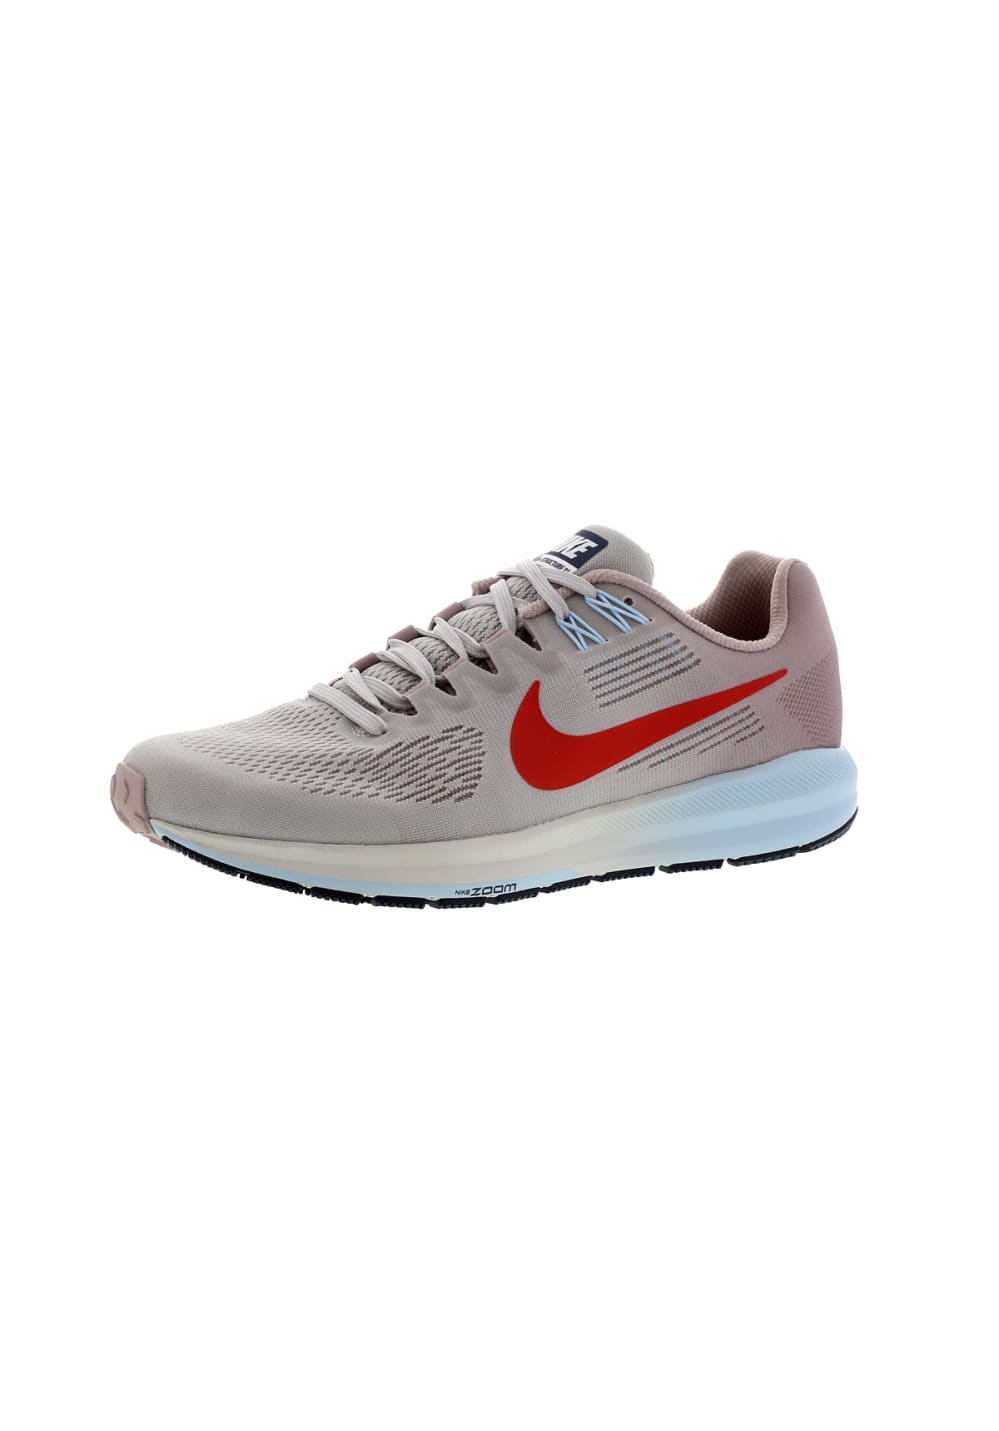 check out 73f31 6d748 Nike Air Zoom Structure 21 - Running shoes for Women - Beige